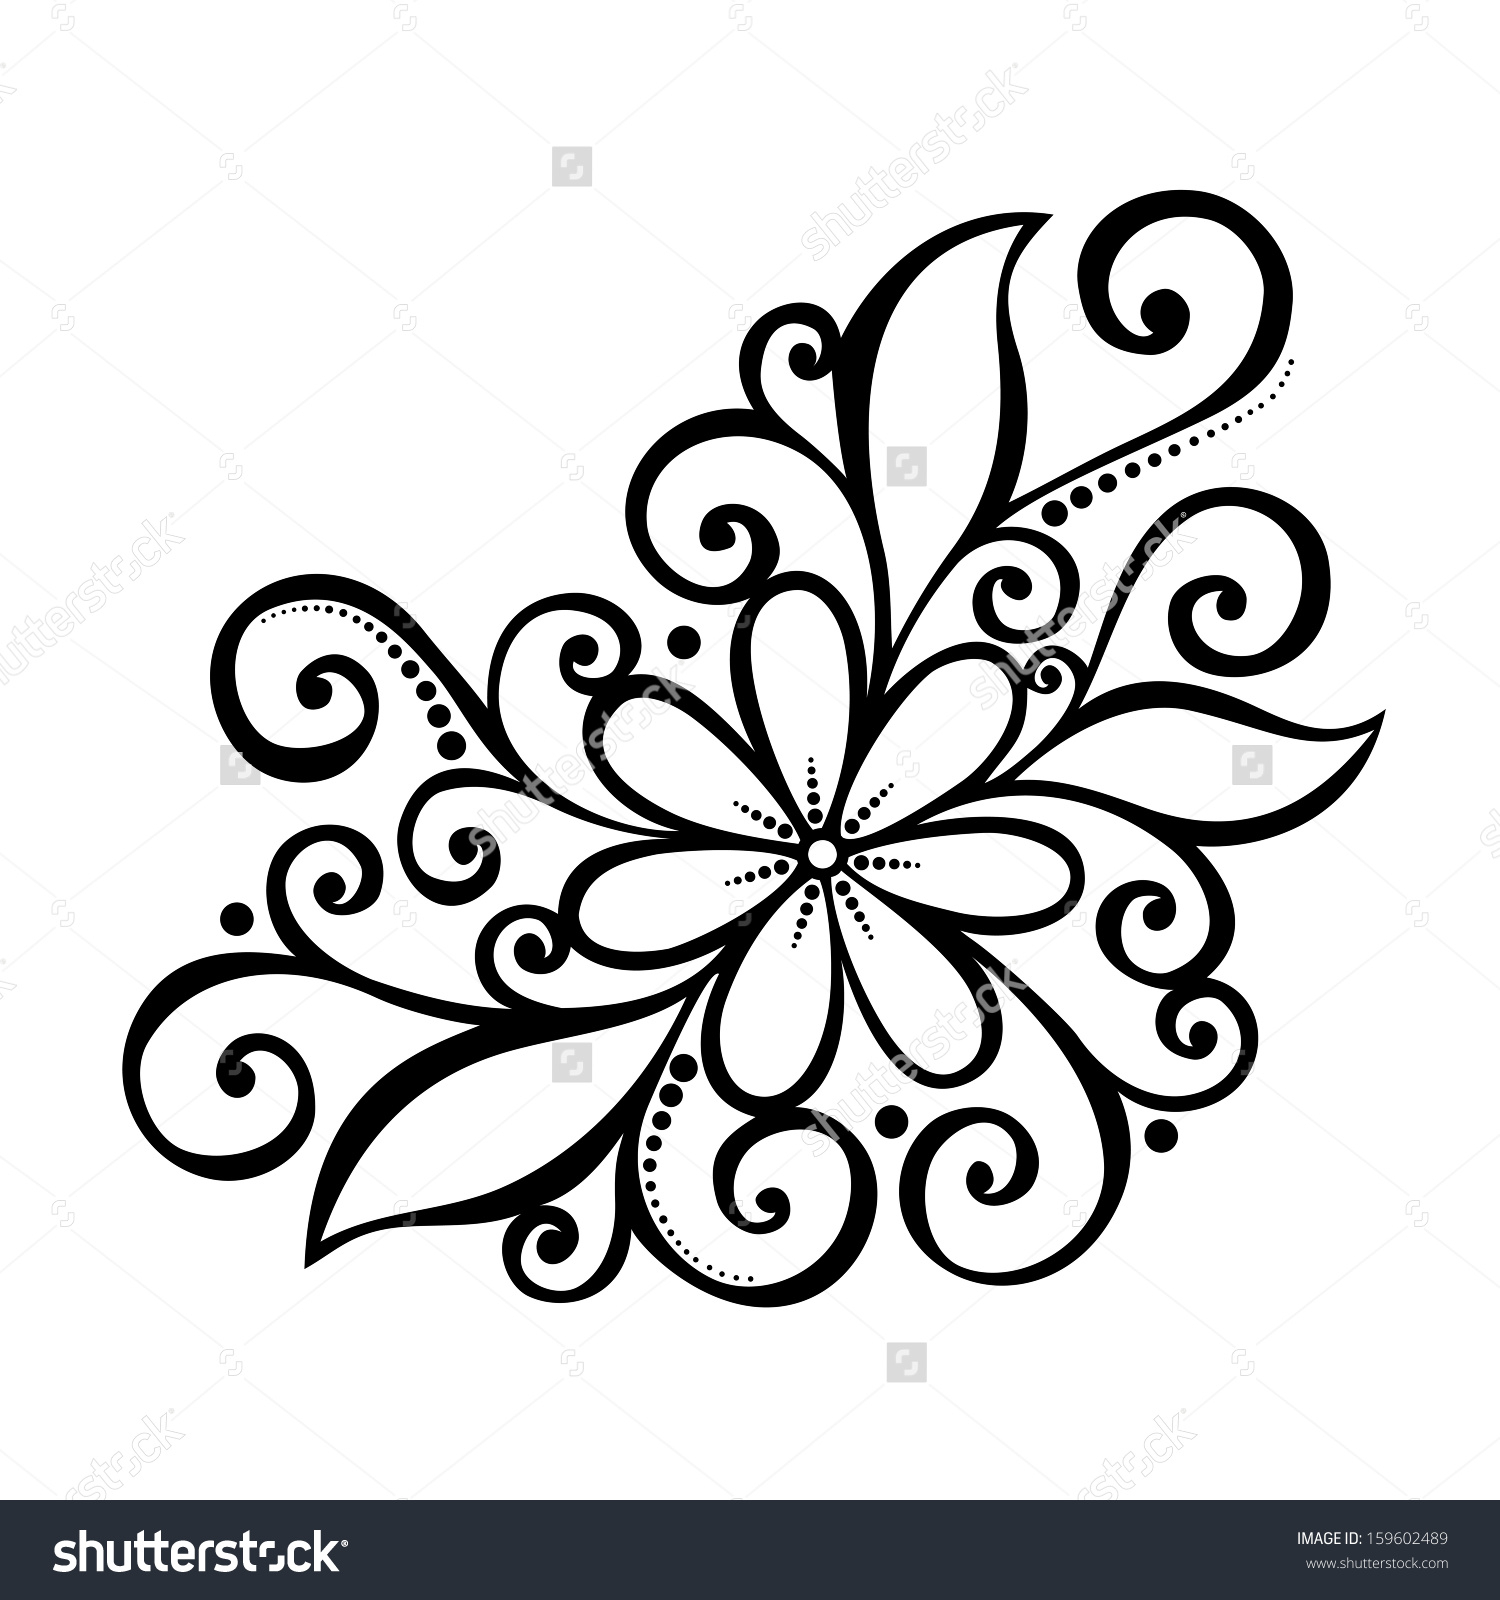 1500x1600 Hot To Draw A Beautiful Flower